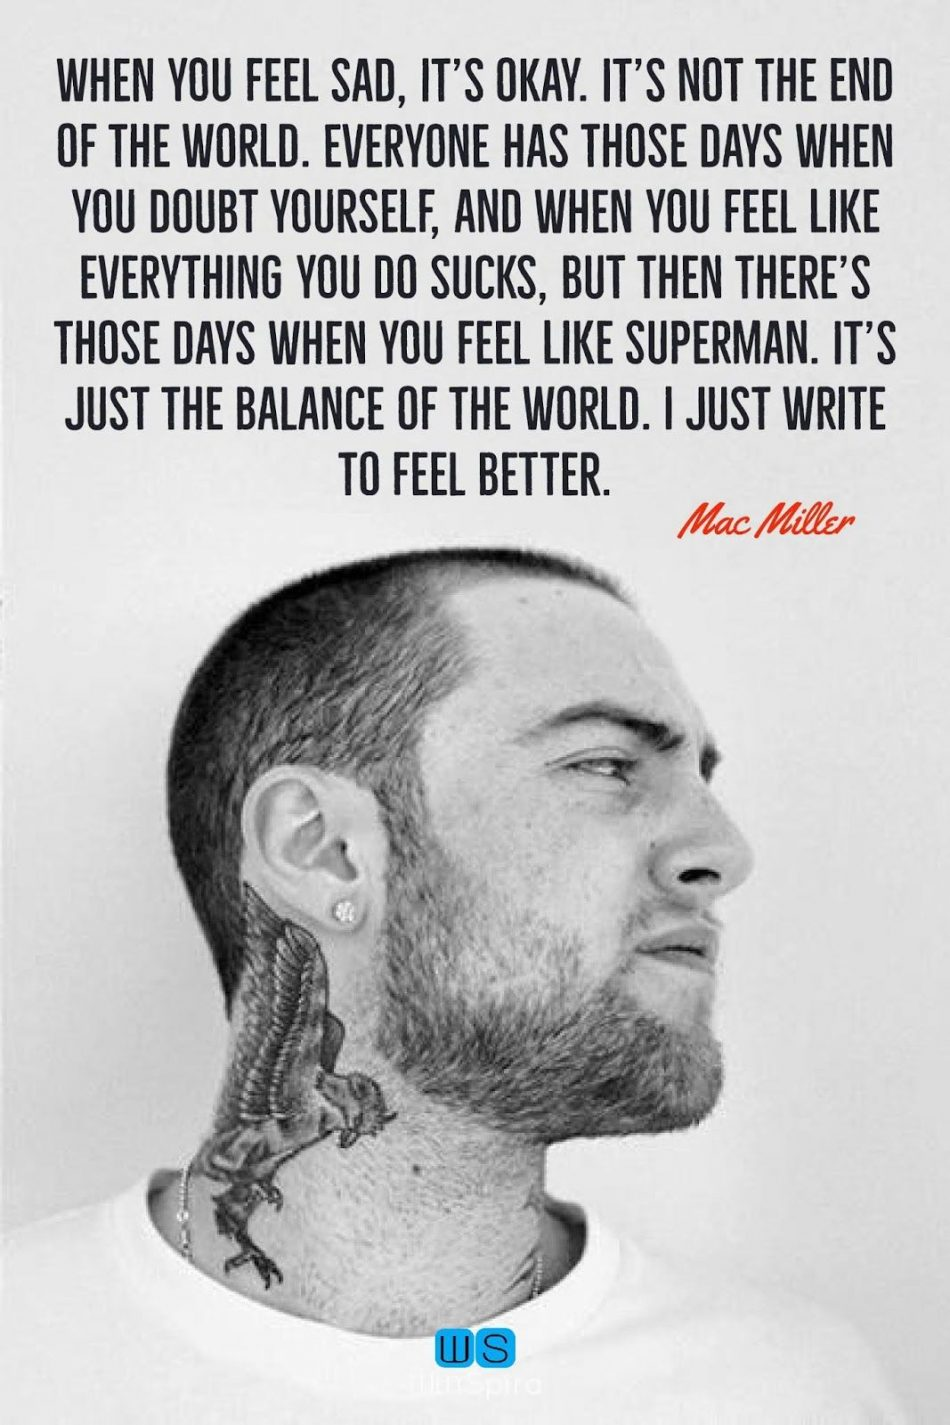 22 Inspirational and motivational Mac Miller quotes (RIP) – Winspira #macmillerquote...